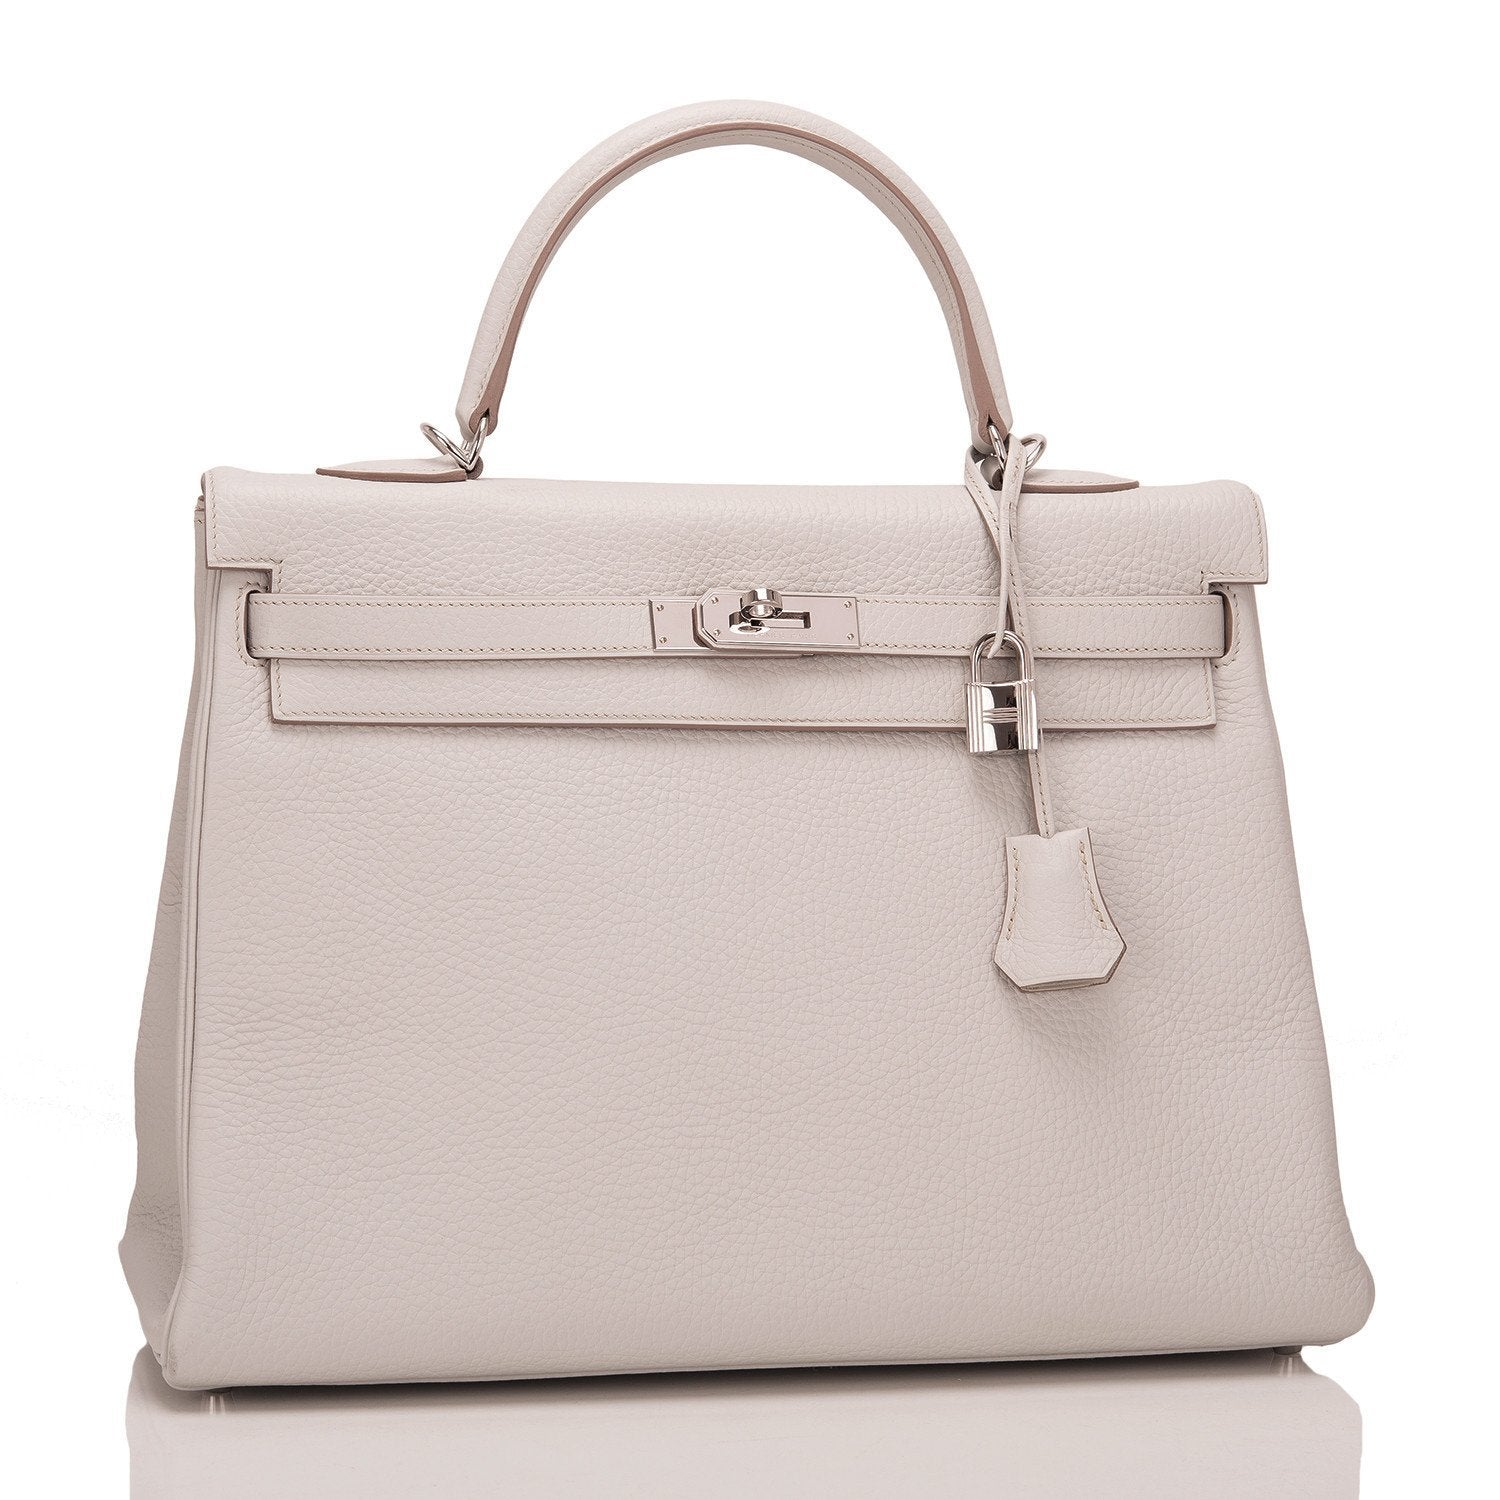 9403aff10b8 Hermes Gris Perle Clemence Kelly 35cm Palladium Hardware (Preloved - E –  Madison Avenue Couture